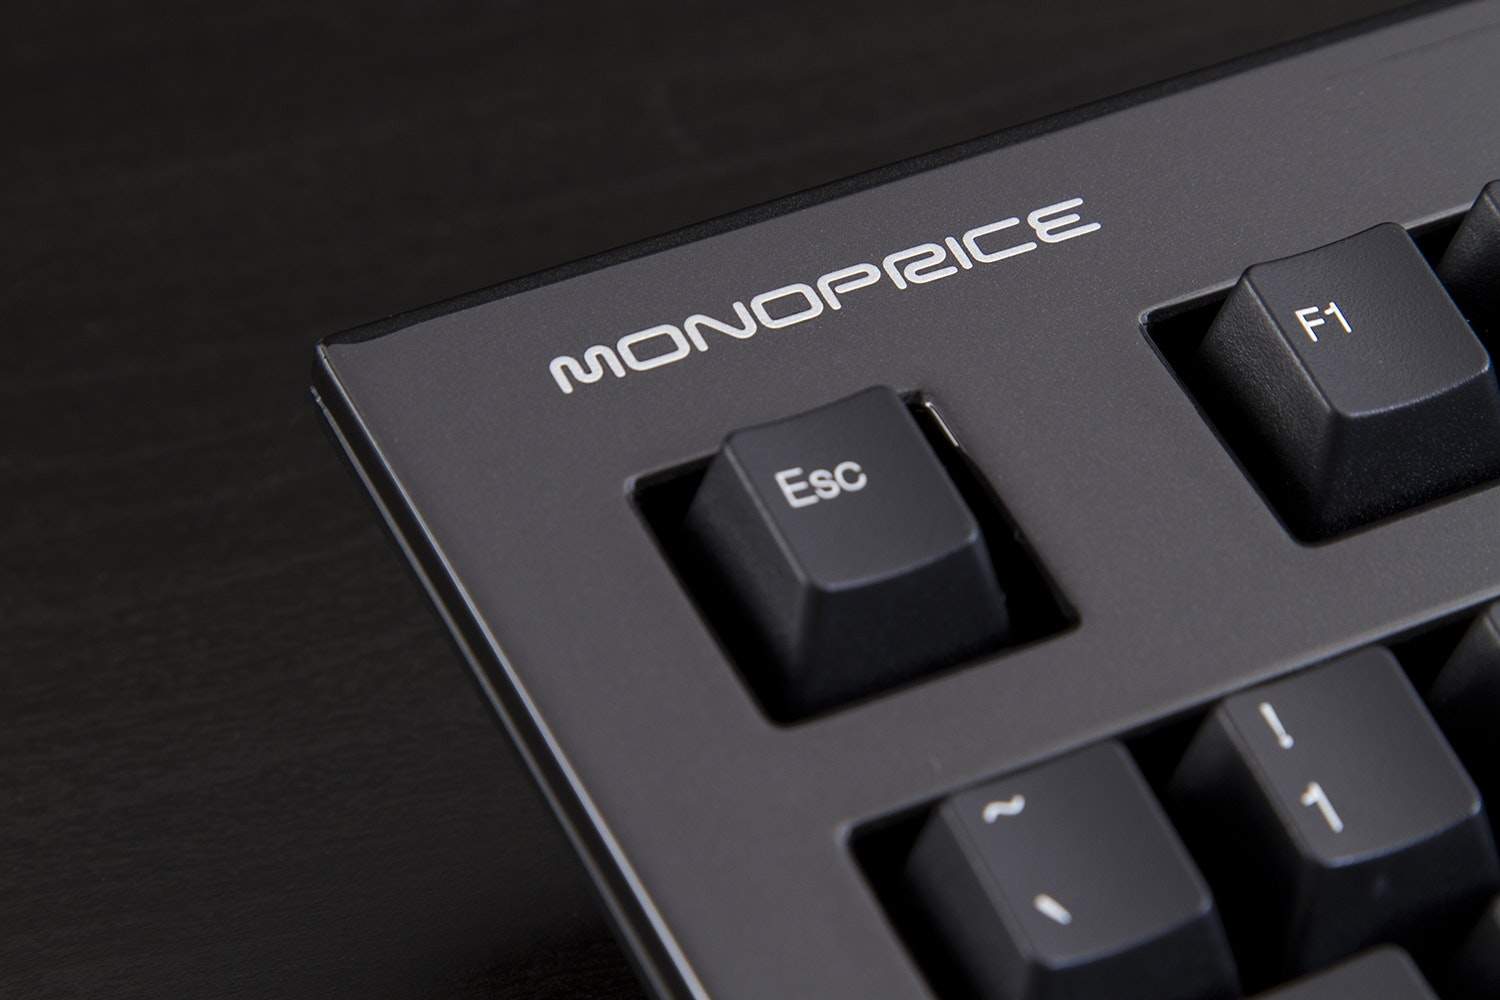 Monoprice Cherry MX Blue Keyboard